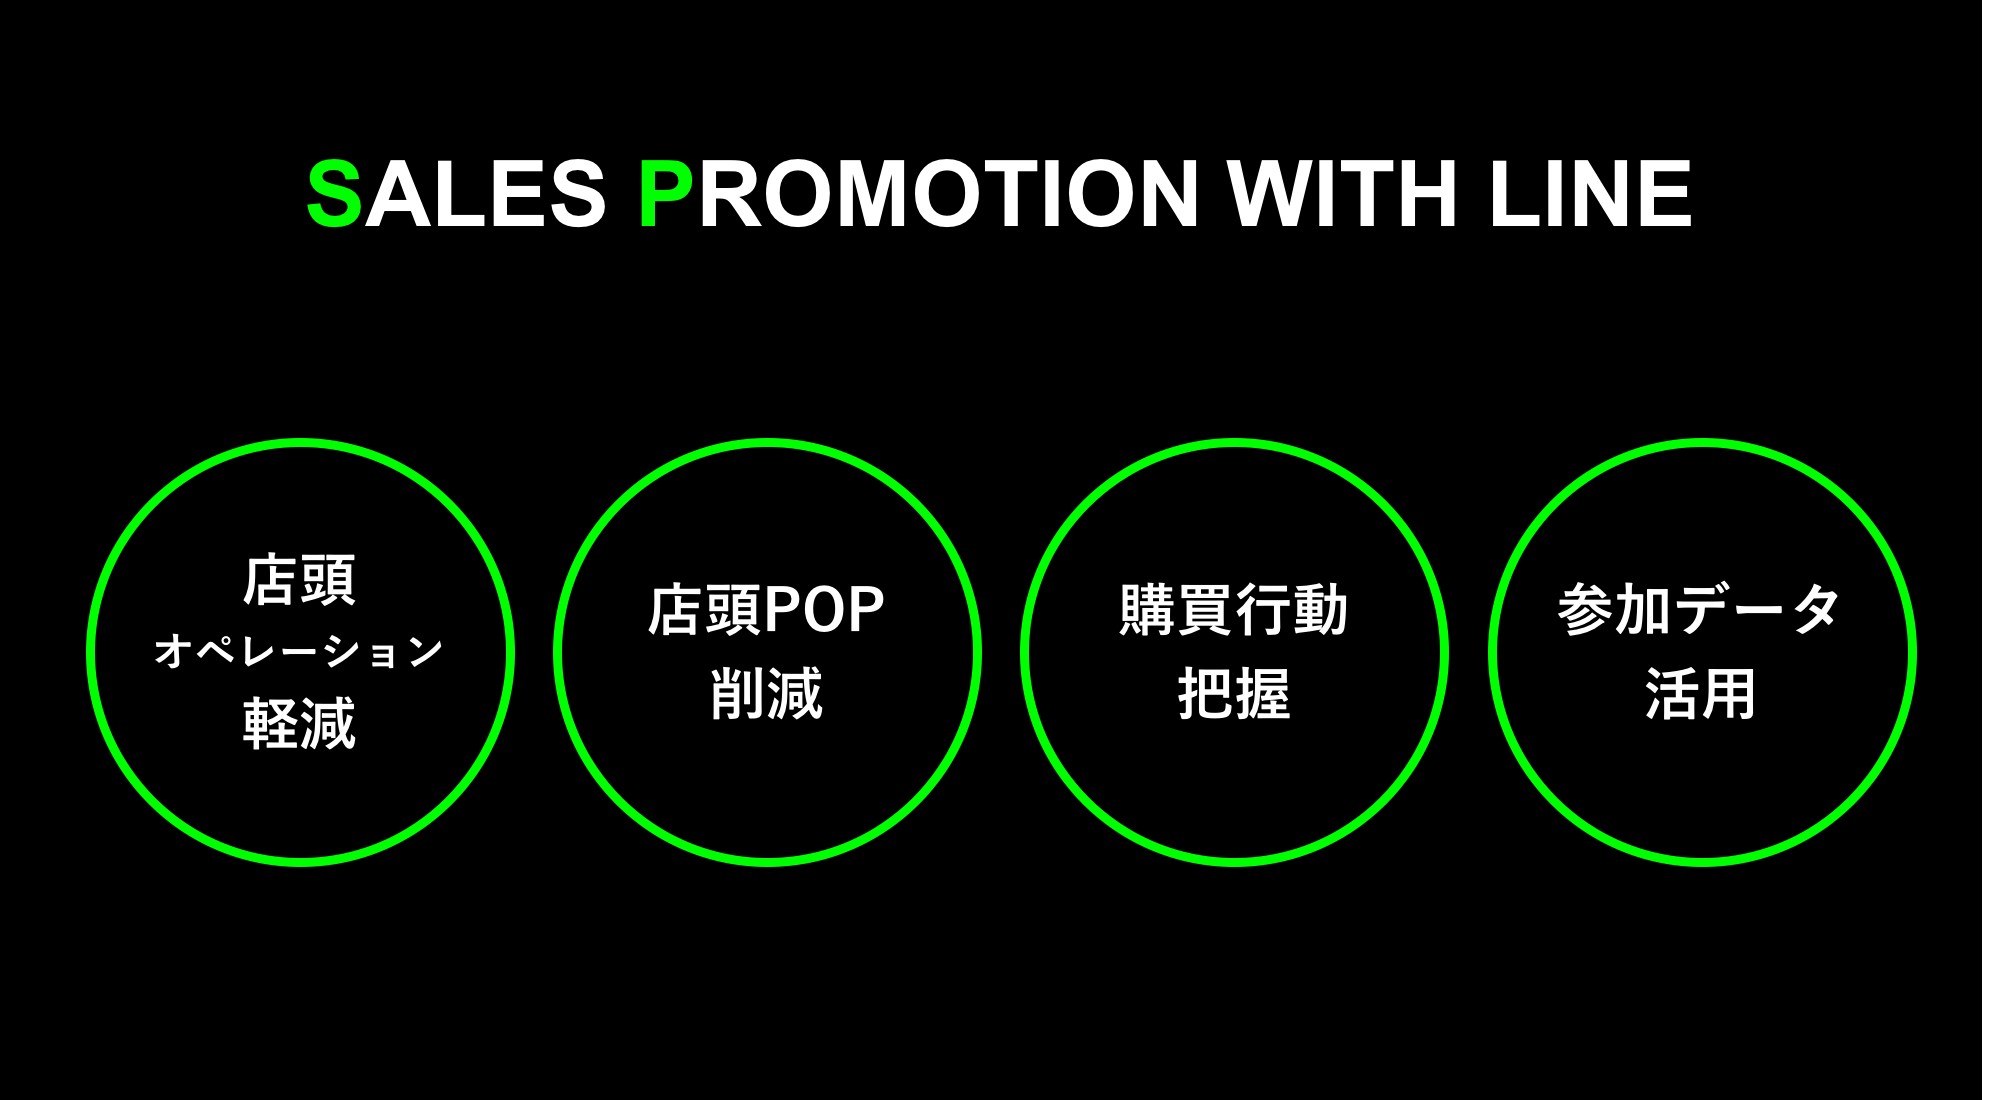 SALES PROMOTINON WITH LINE